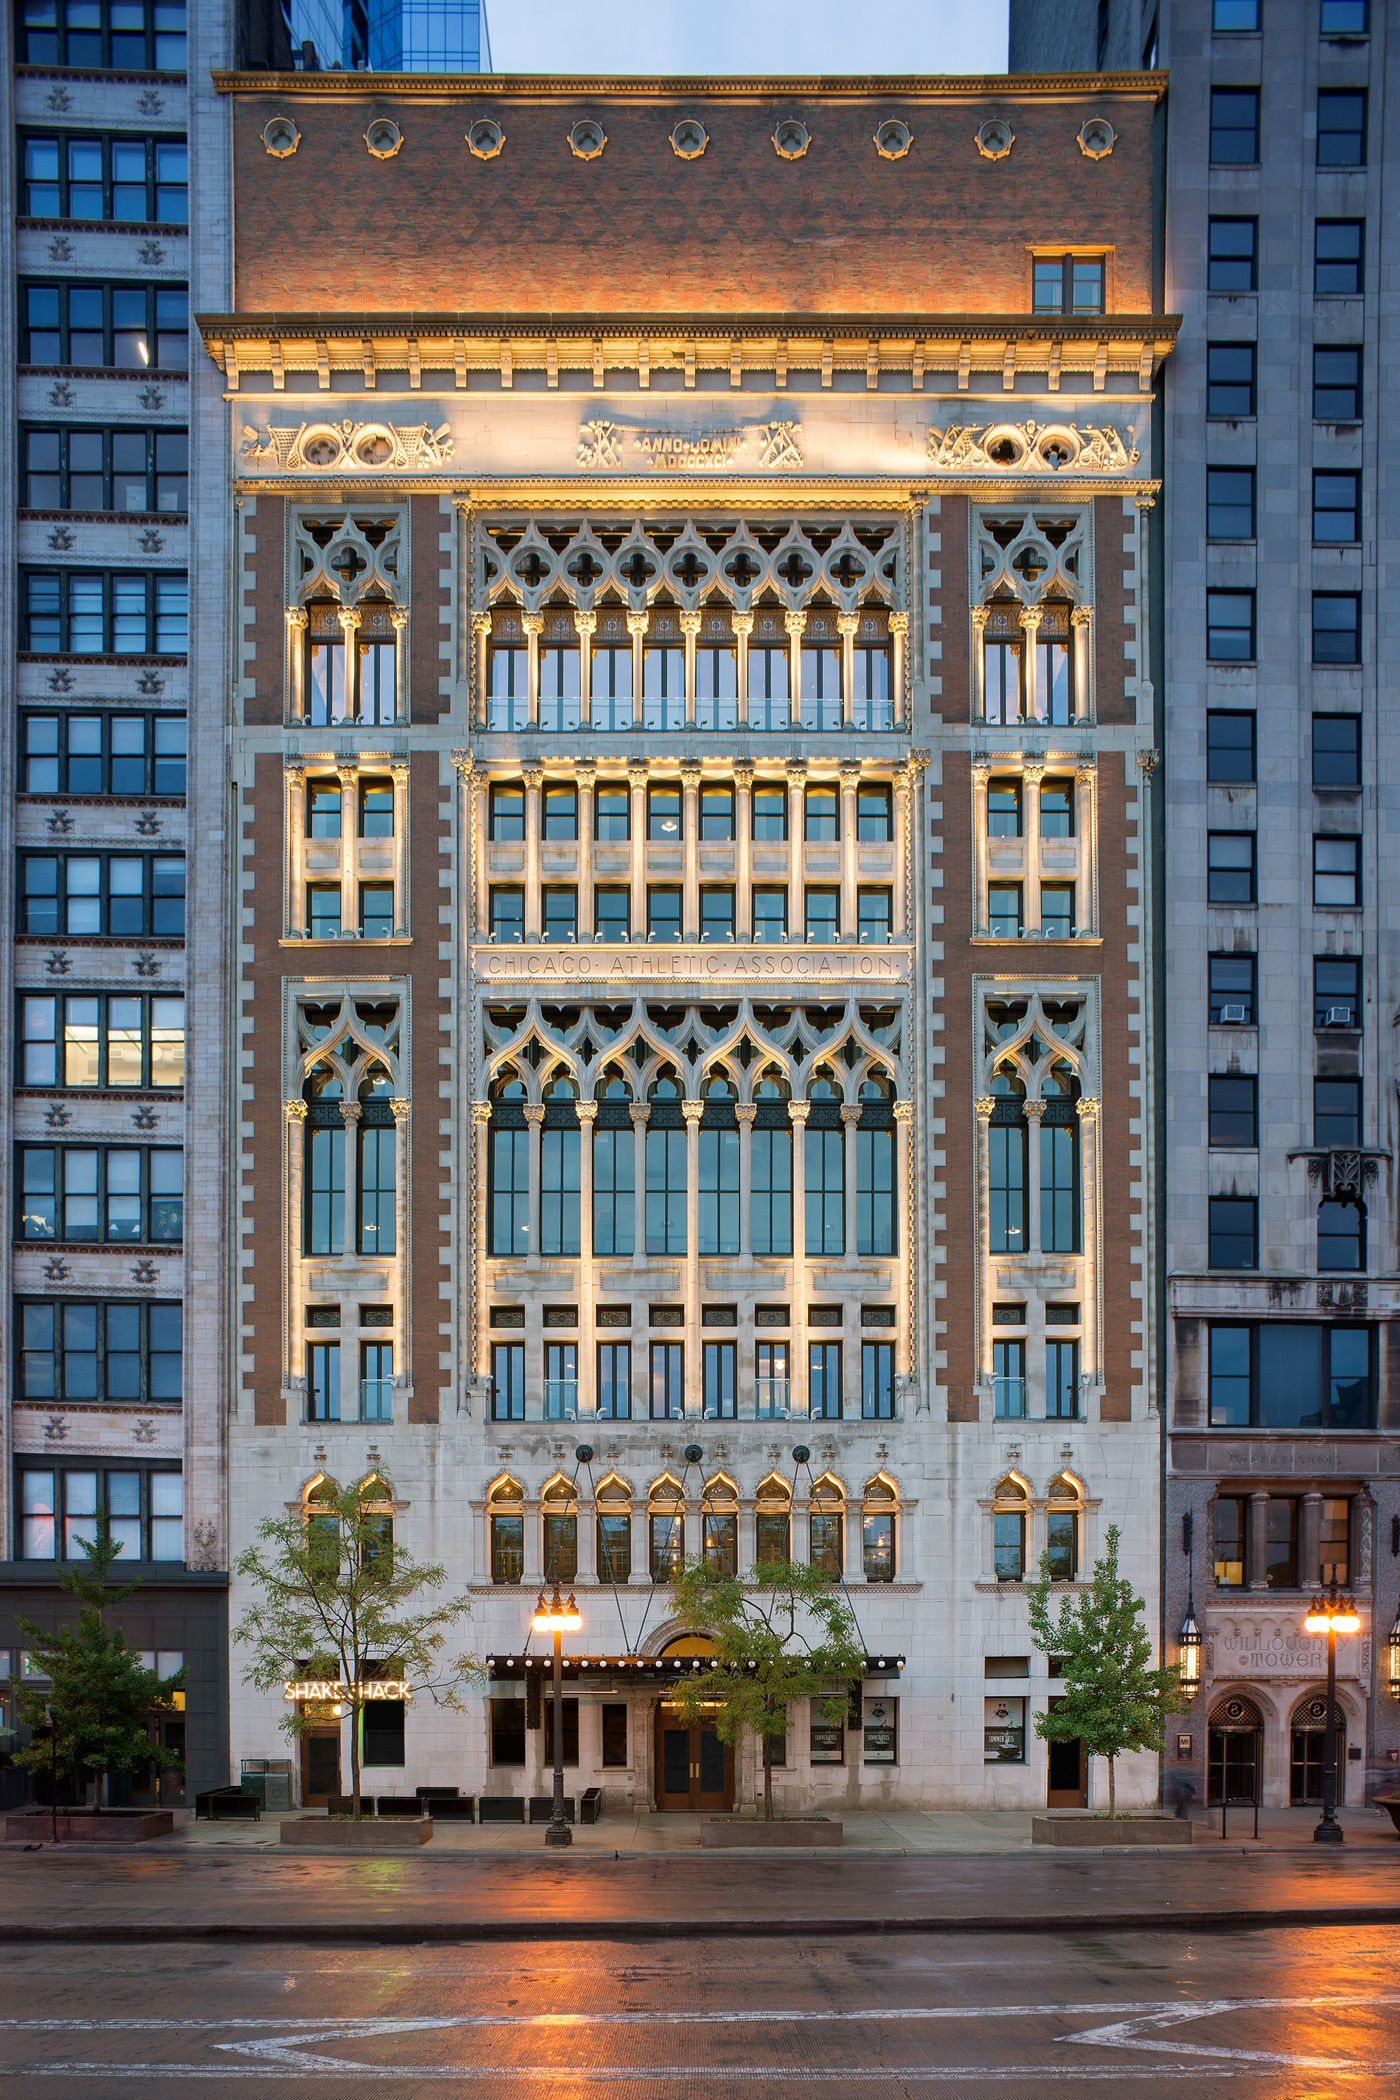 Chicago Athletic Association Hotel Facade Architecture Hotel Facade Hotel Architecture